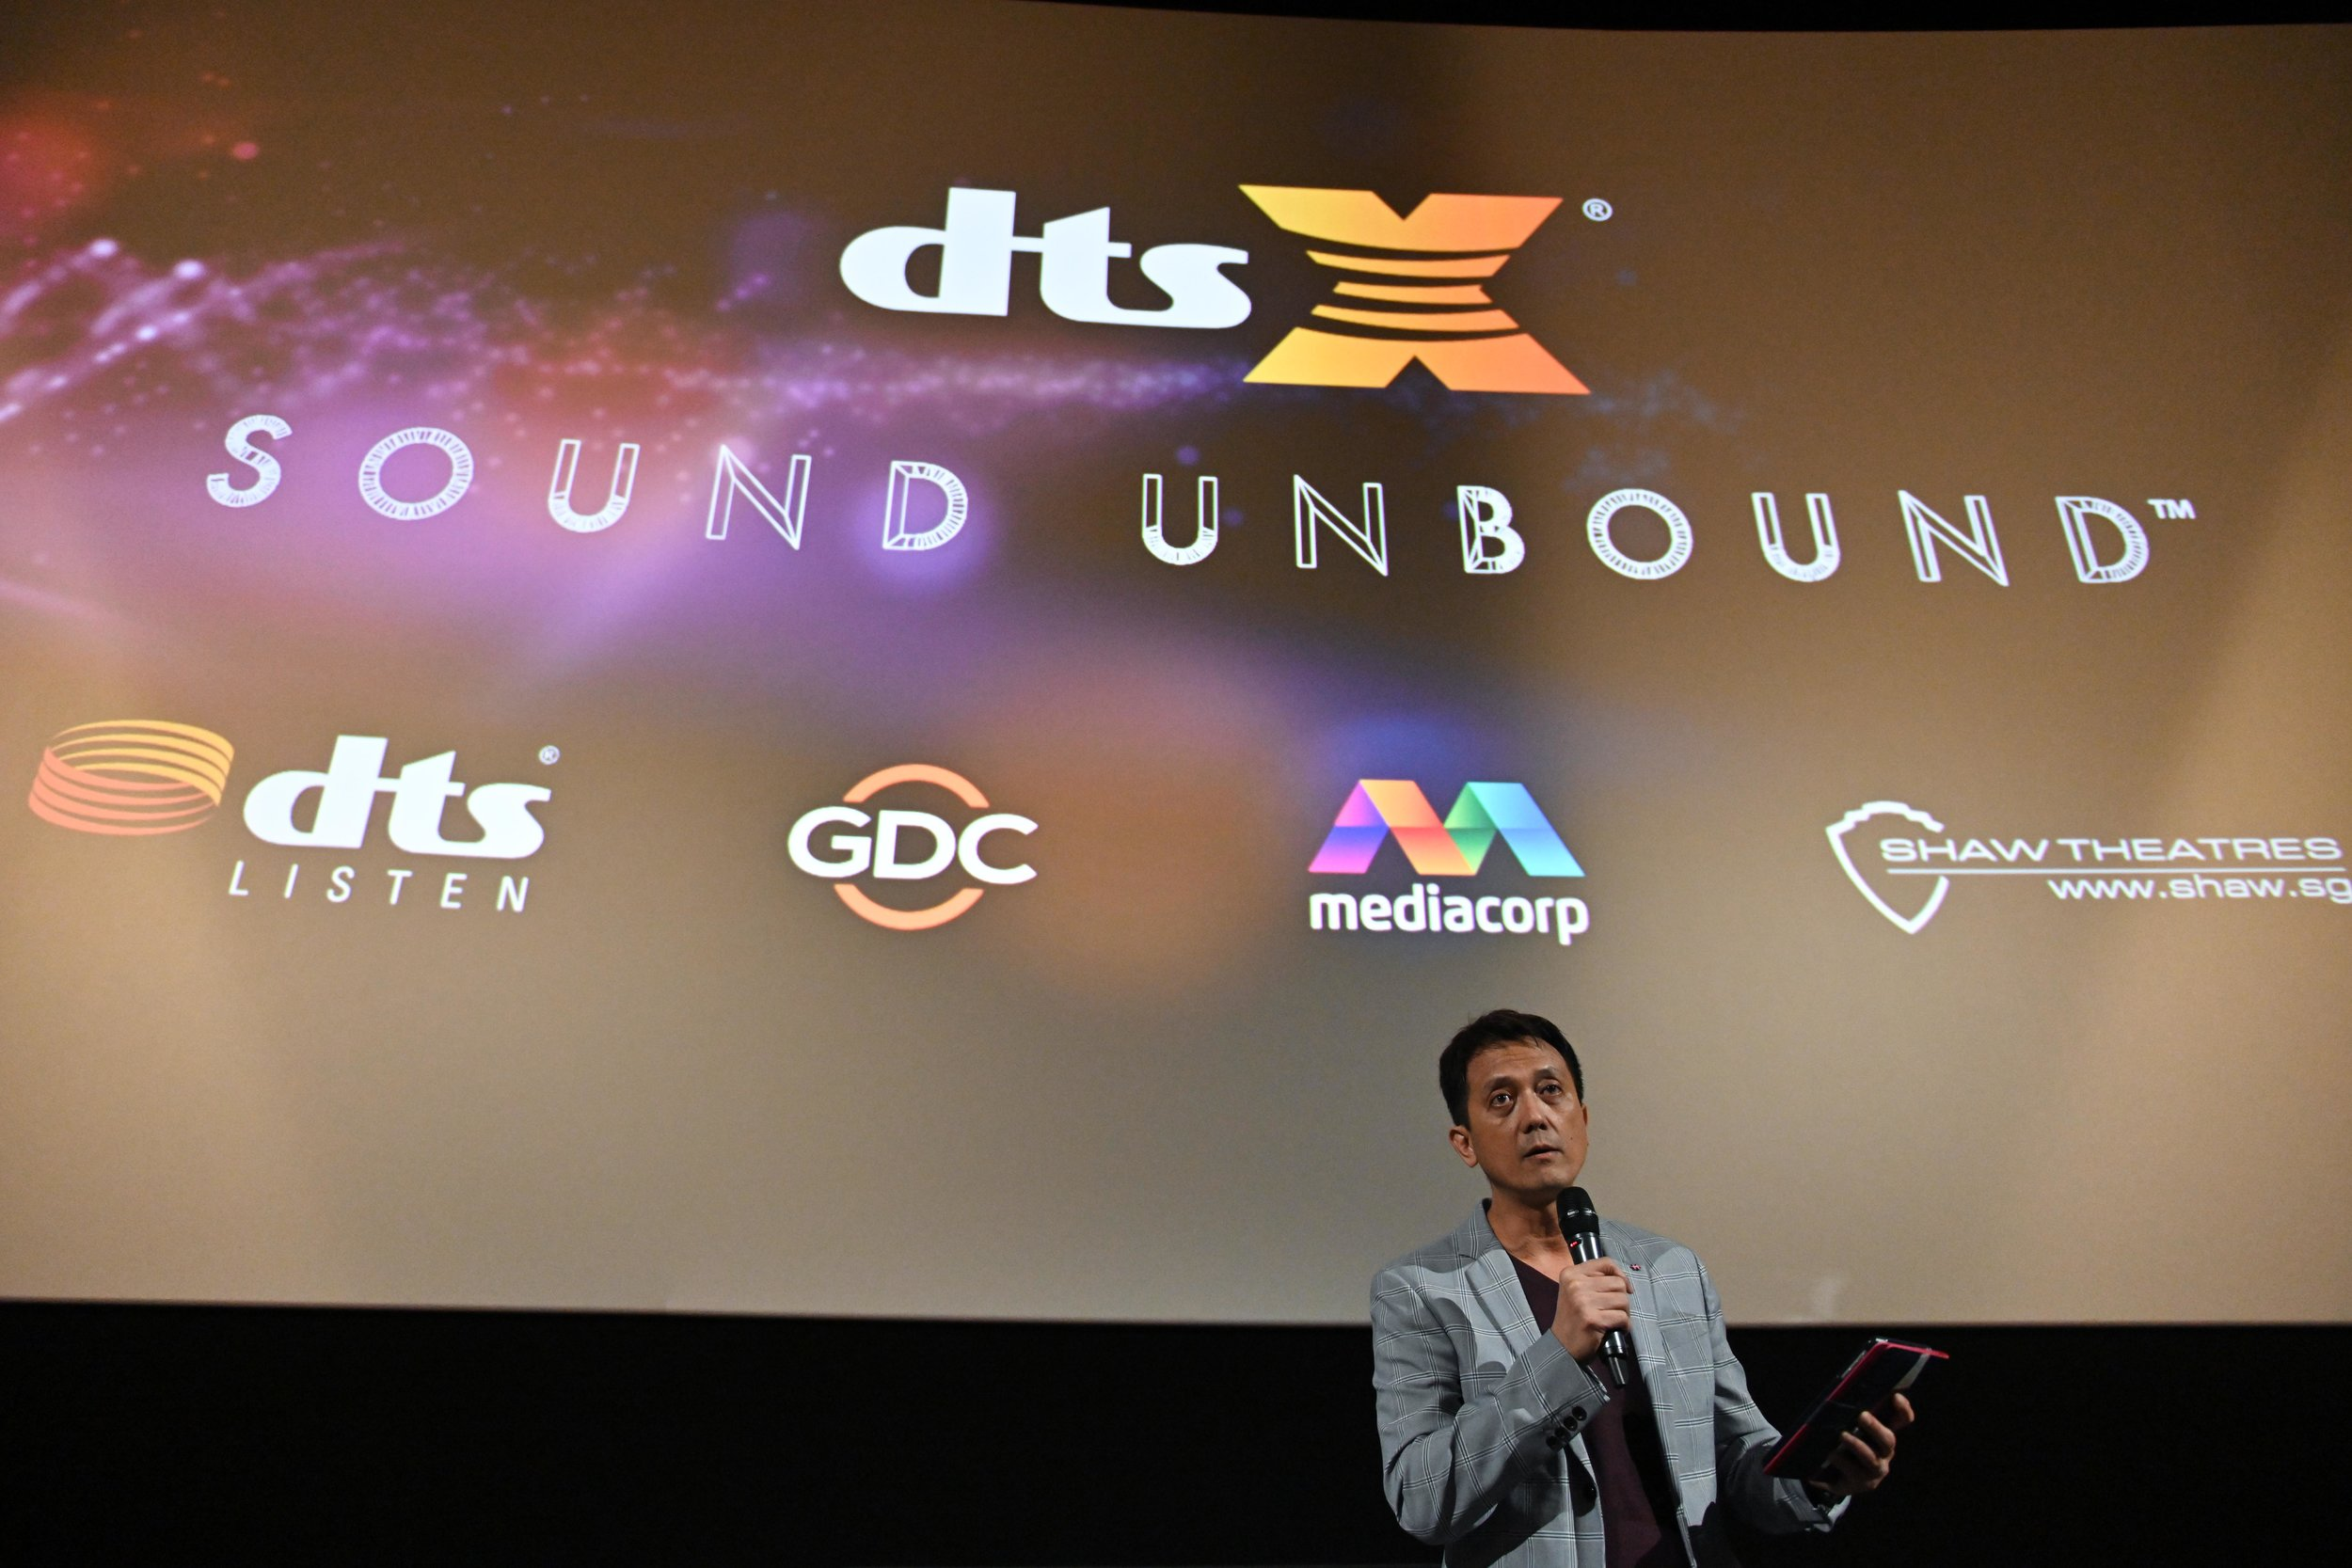 Mediacorp and DTS:X set to create sonic boom — Productions Resources